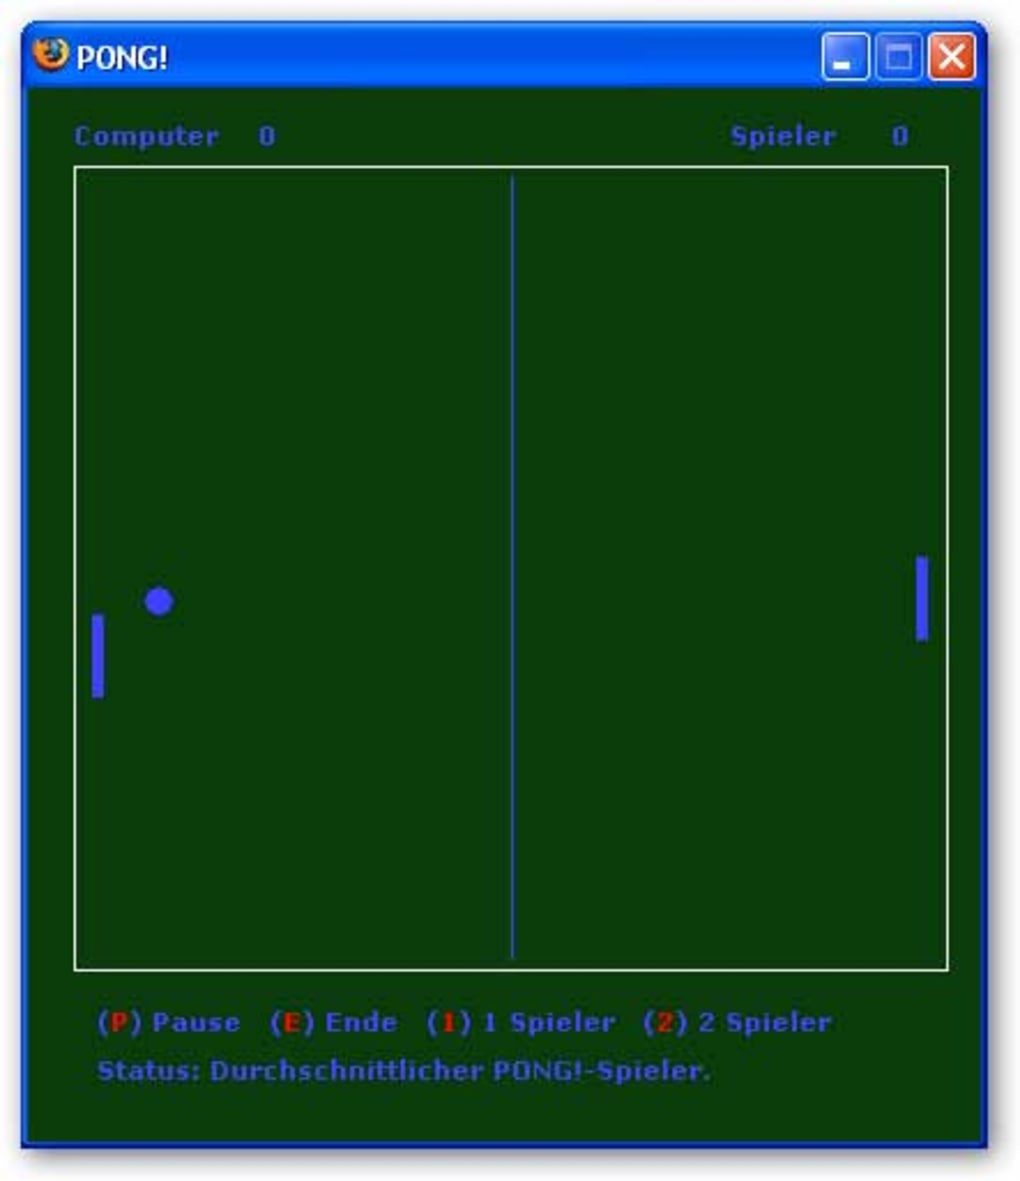 Pong Multiplayer